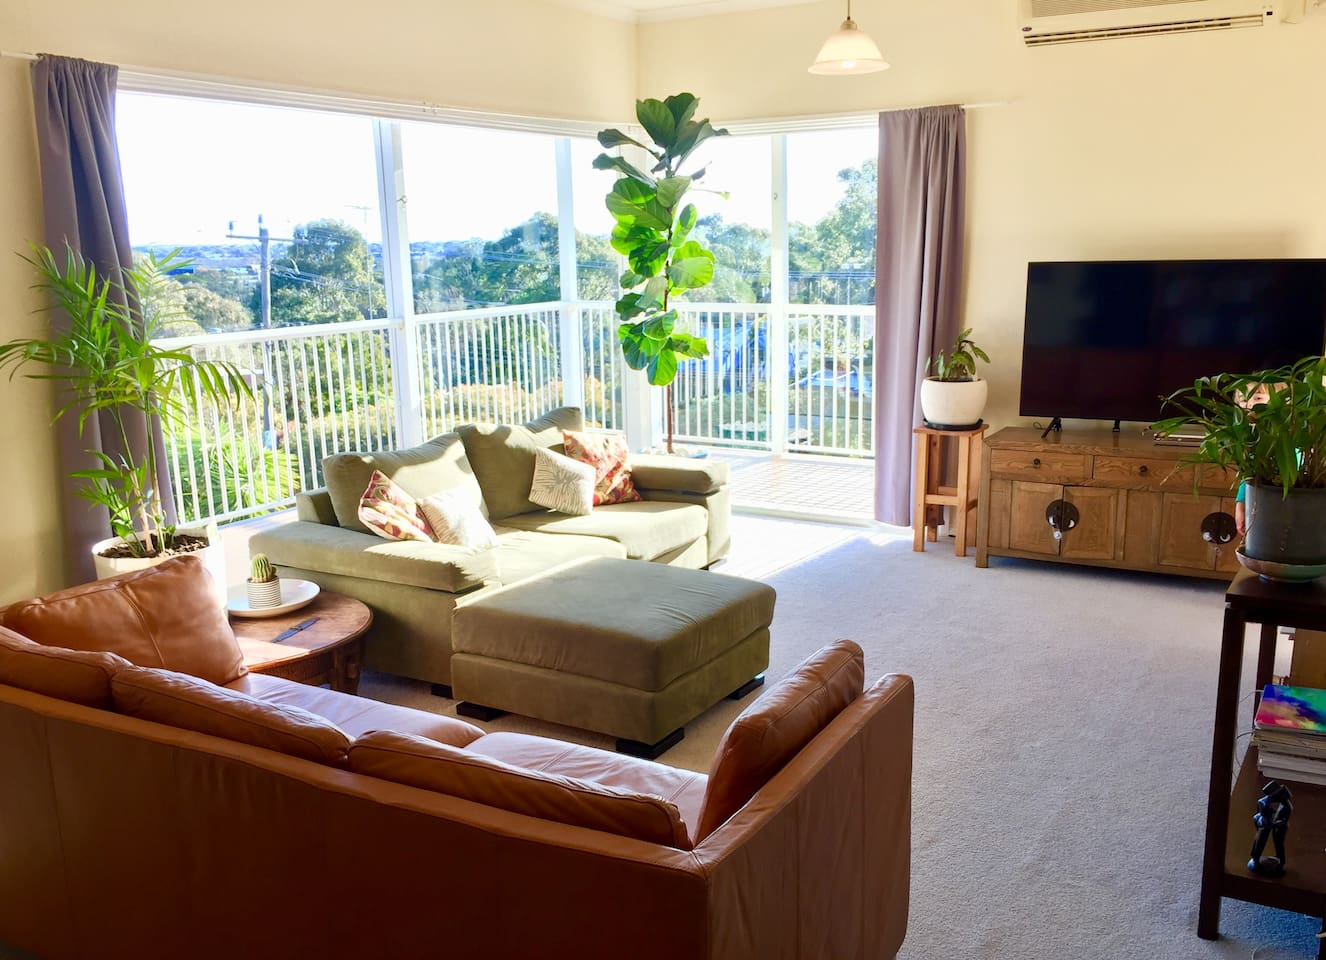 Lounge with views towards the Barwon river to setting sun